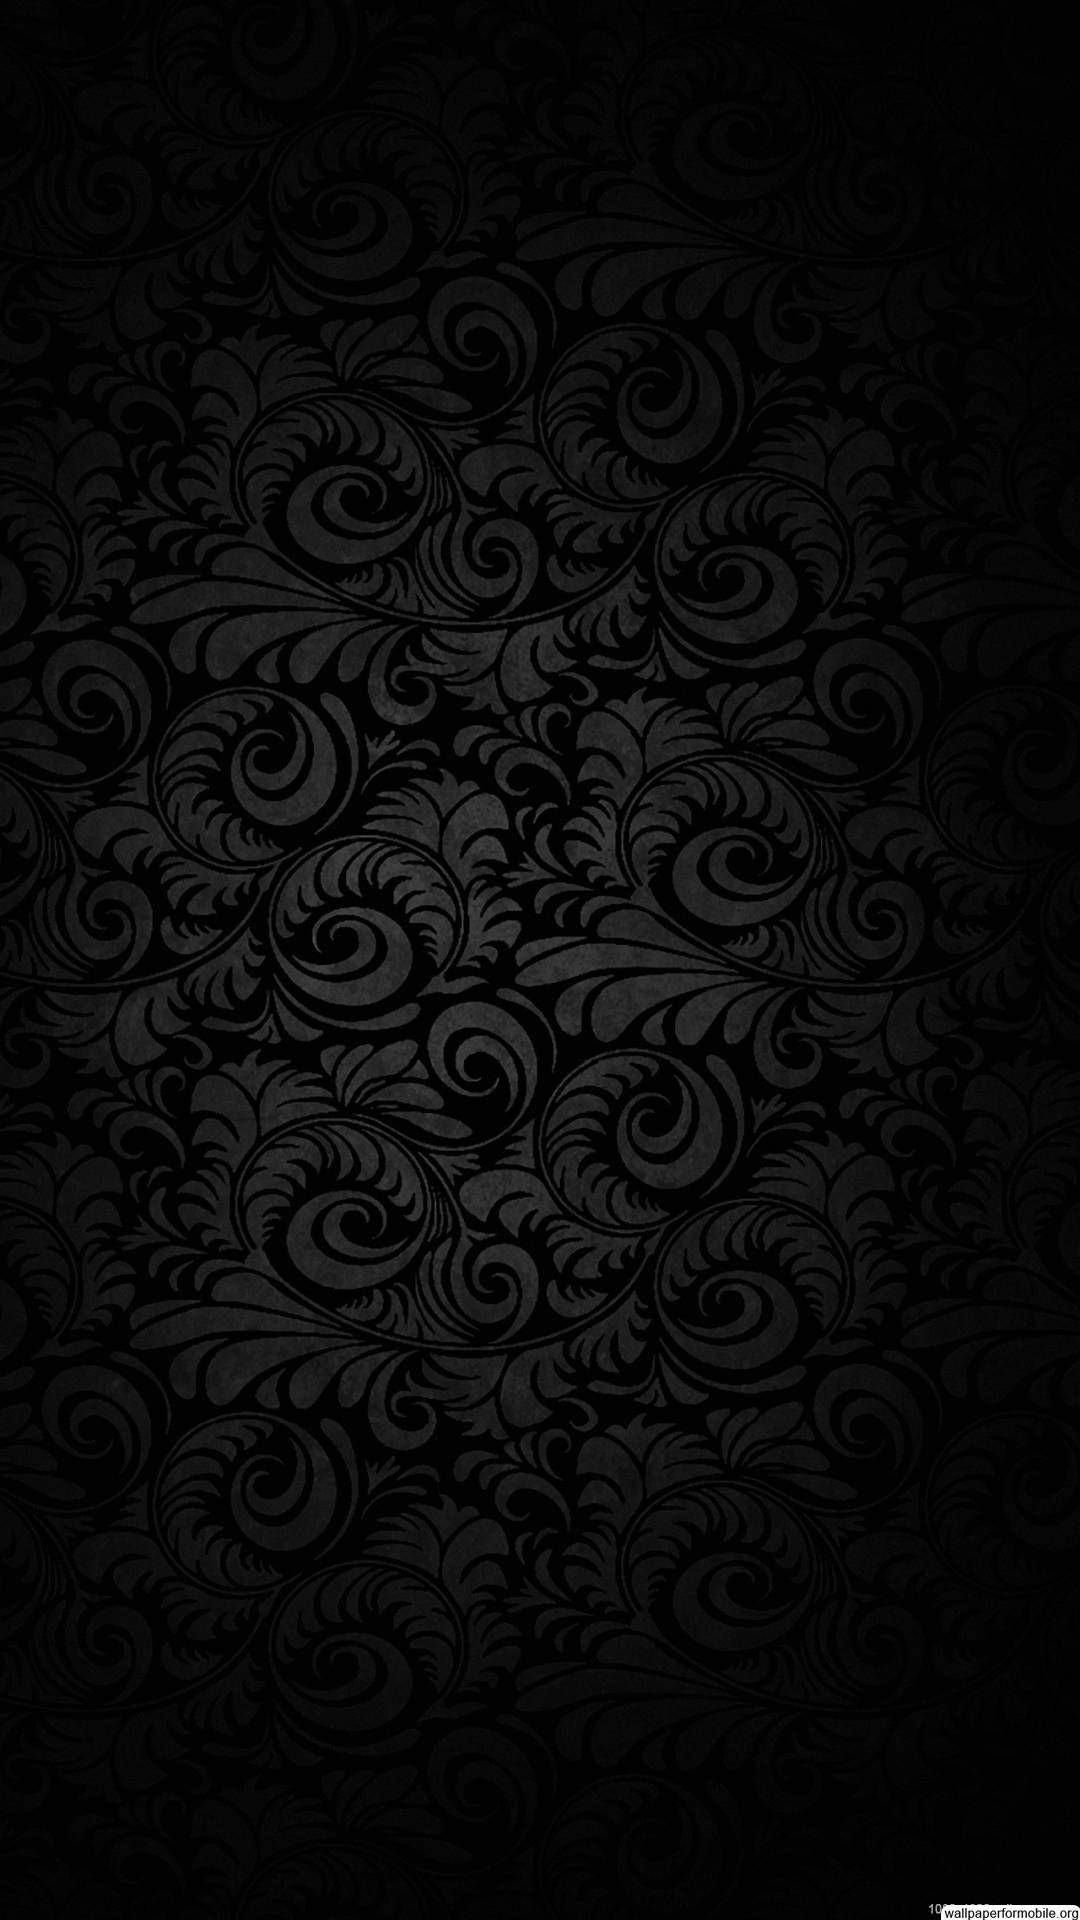 So Ive Got This Thing For Darker Wallpapers Part Mobile Black Hd Wallpaper Wallpaper I Dark Desktop Backgrounds Iphone 5s Wallpaper Black Wallpaper For Mobile